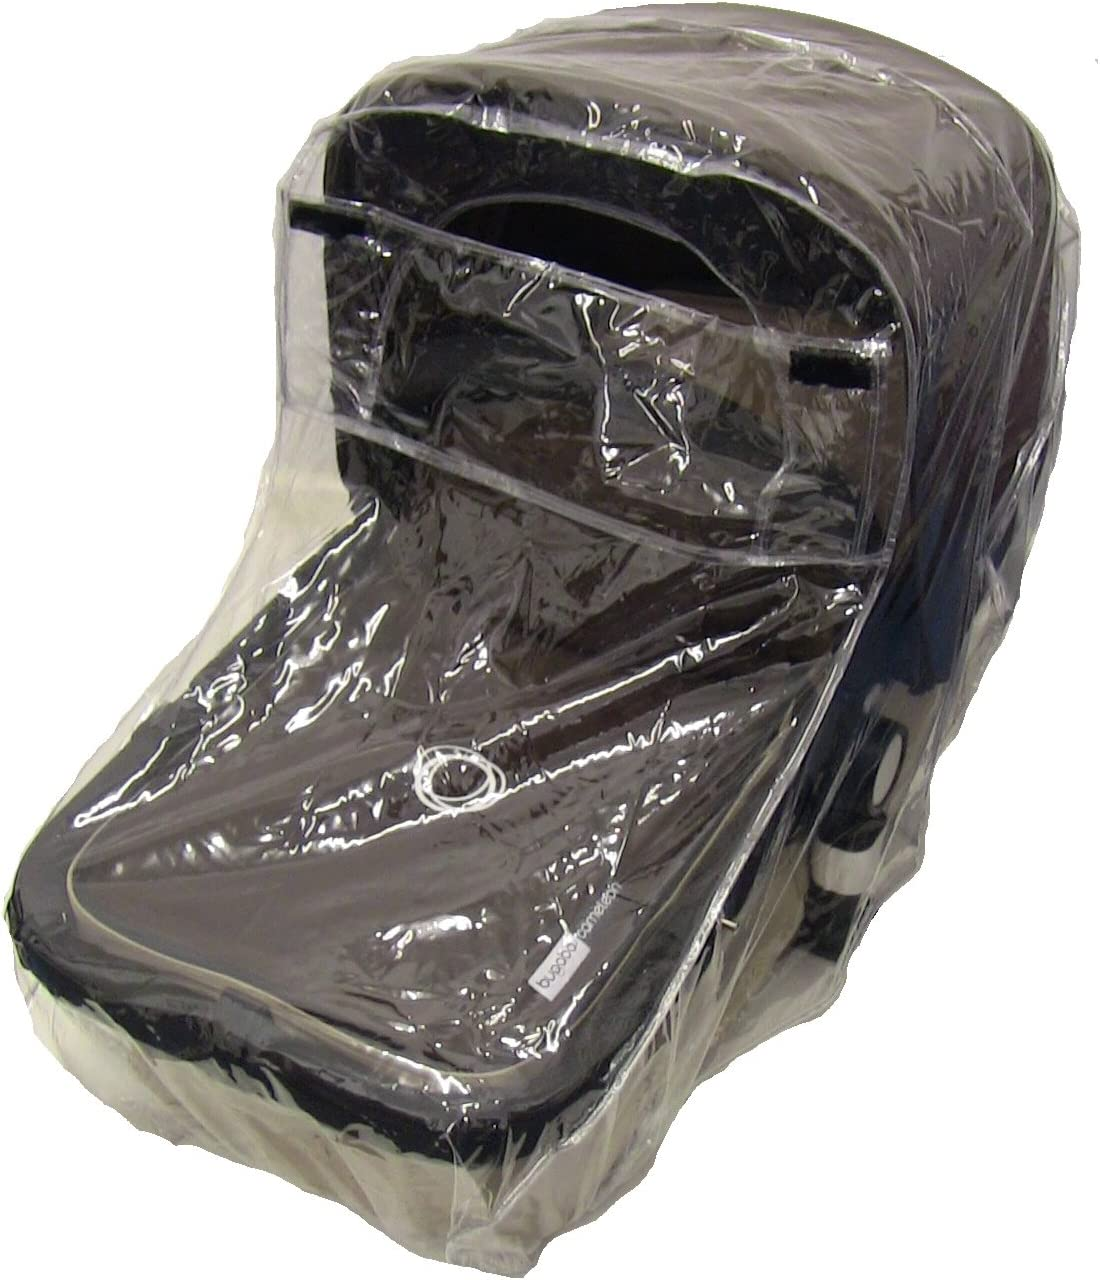 Koodee Raincover Designed to fit BUGABOO DONKEY SEAT UNIT Made in the UK